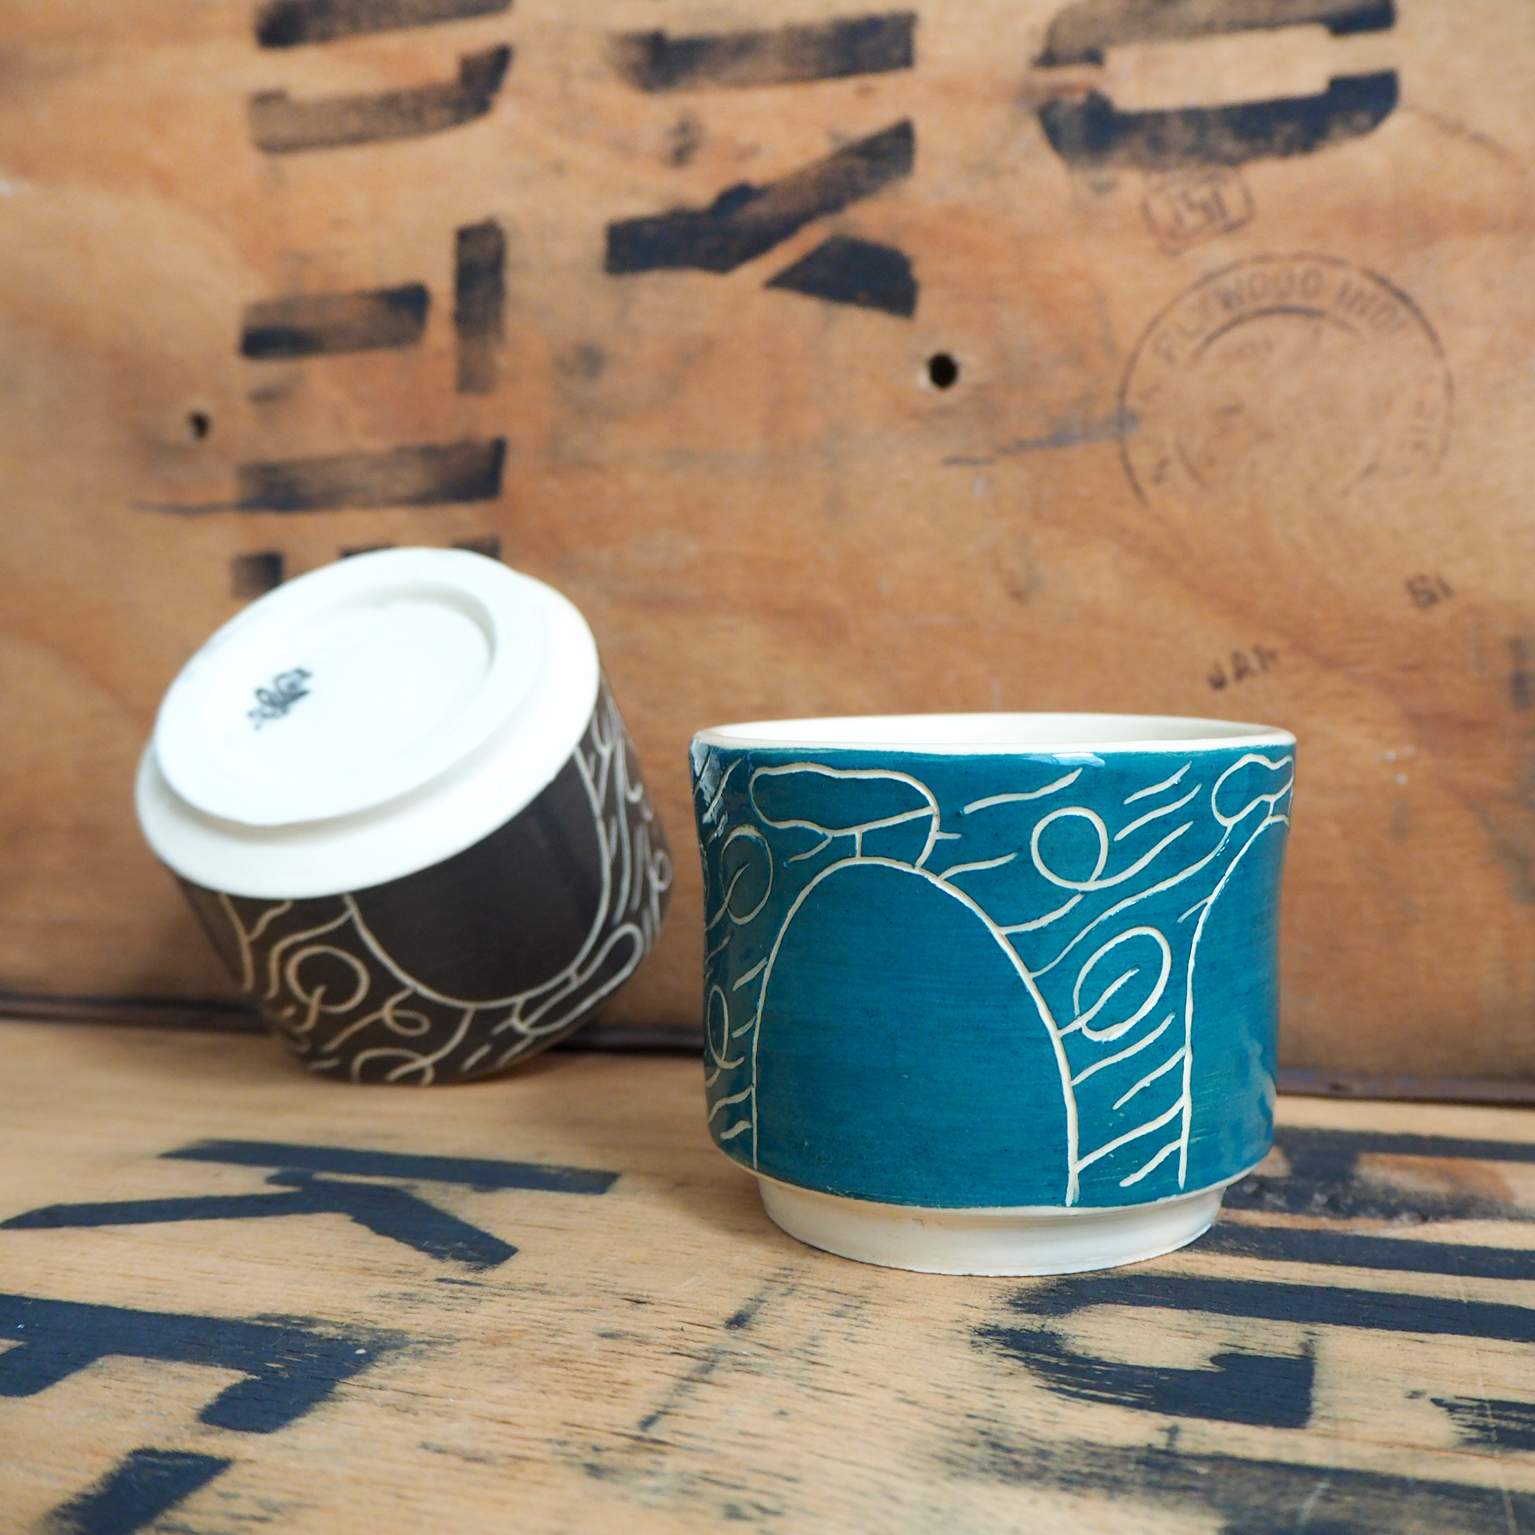 Teal Windy Day Cup By Scotty Gillespie